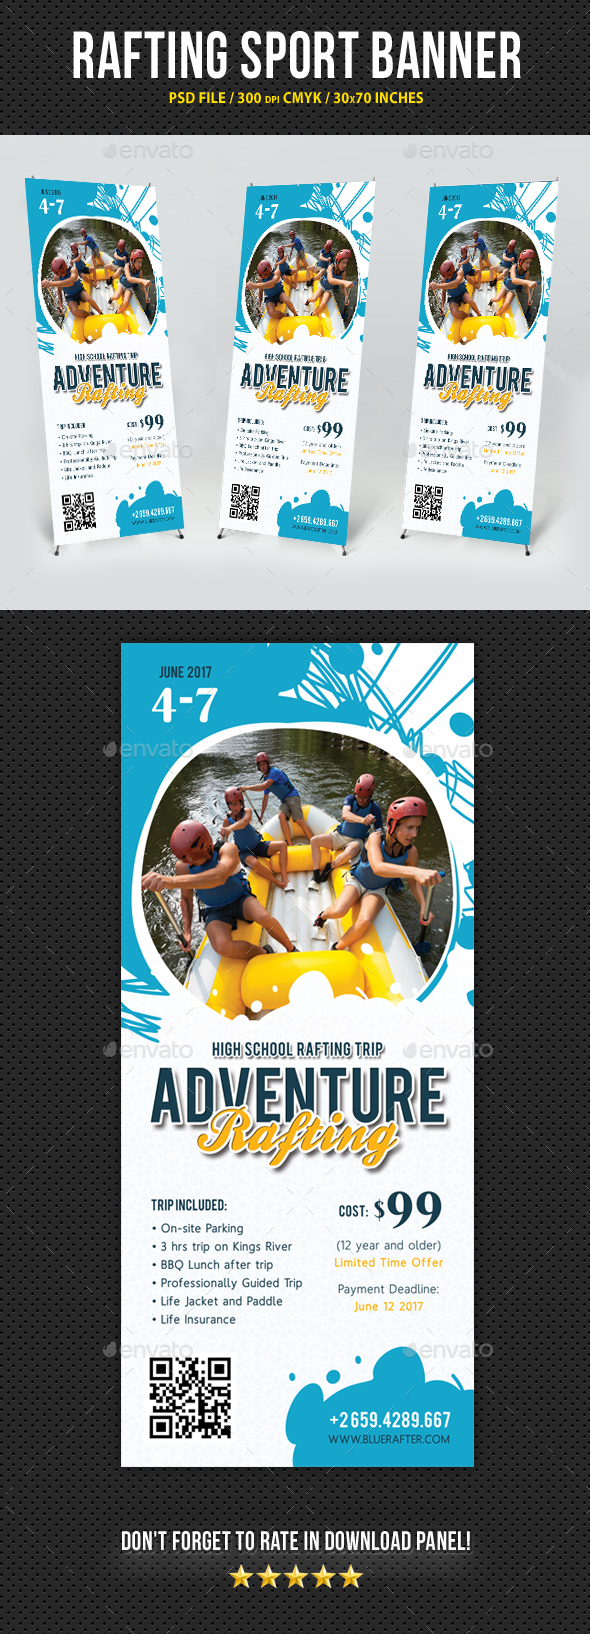 Rafting Banner Sport Template V1 - Signage Print Templates